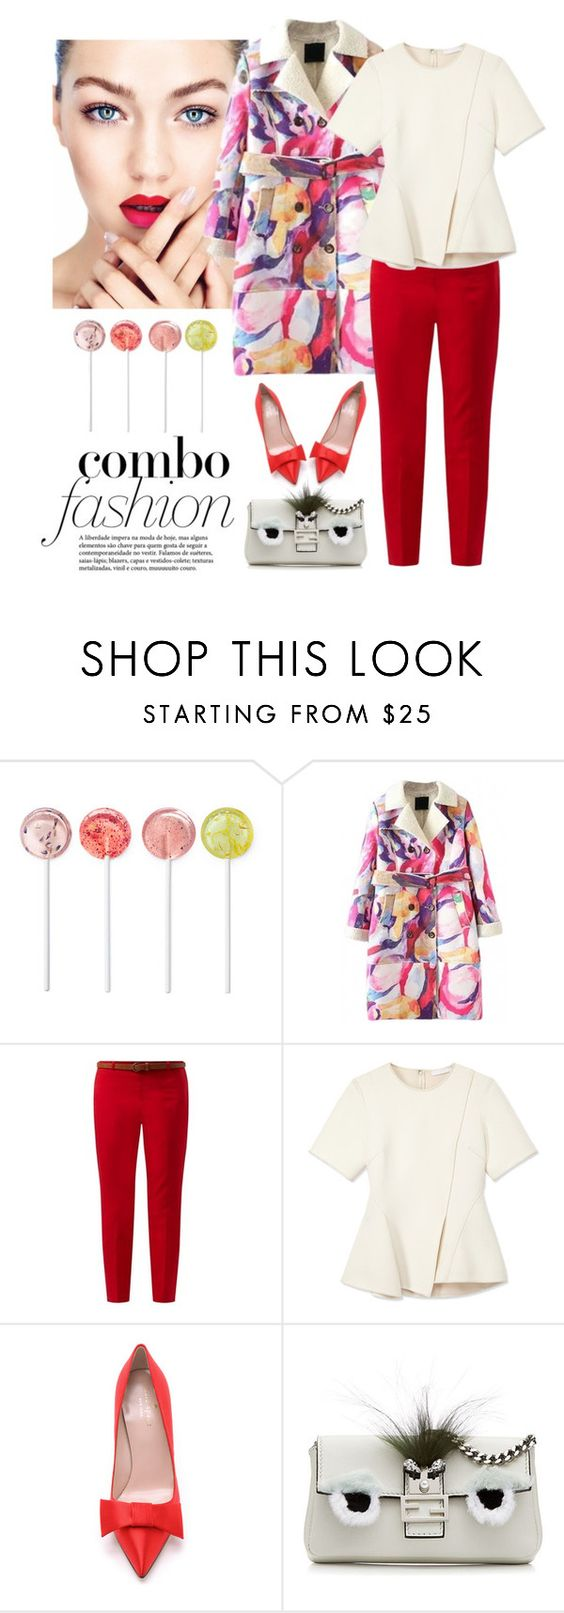 """""""Lollypop"""" by lera-chyzh ❤ liked on Polyvore featuring Alexander Wang, Kate Spade, Fendi, women's clothing, women's fashion, women, female, woman, misses and juniors"""